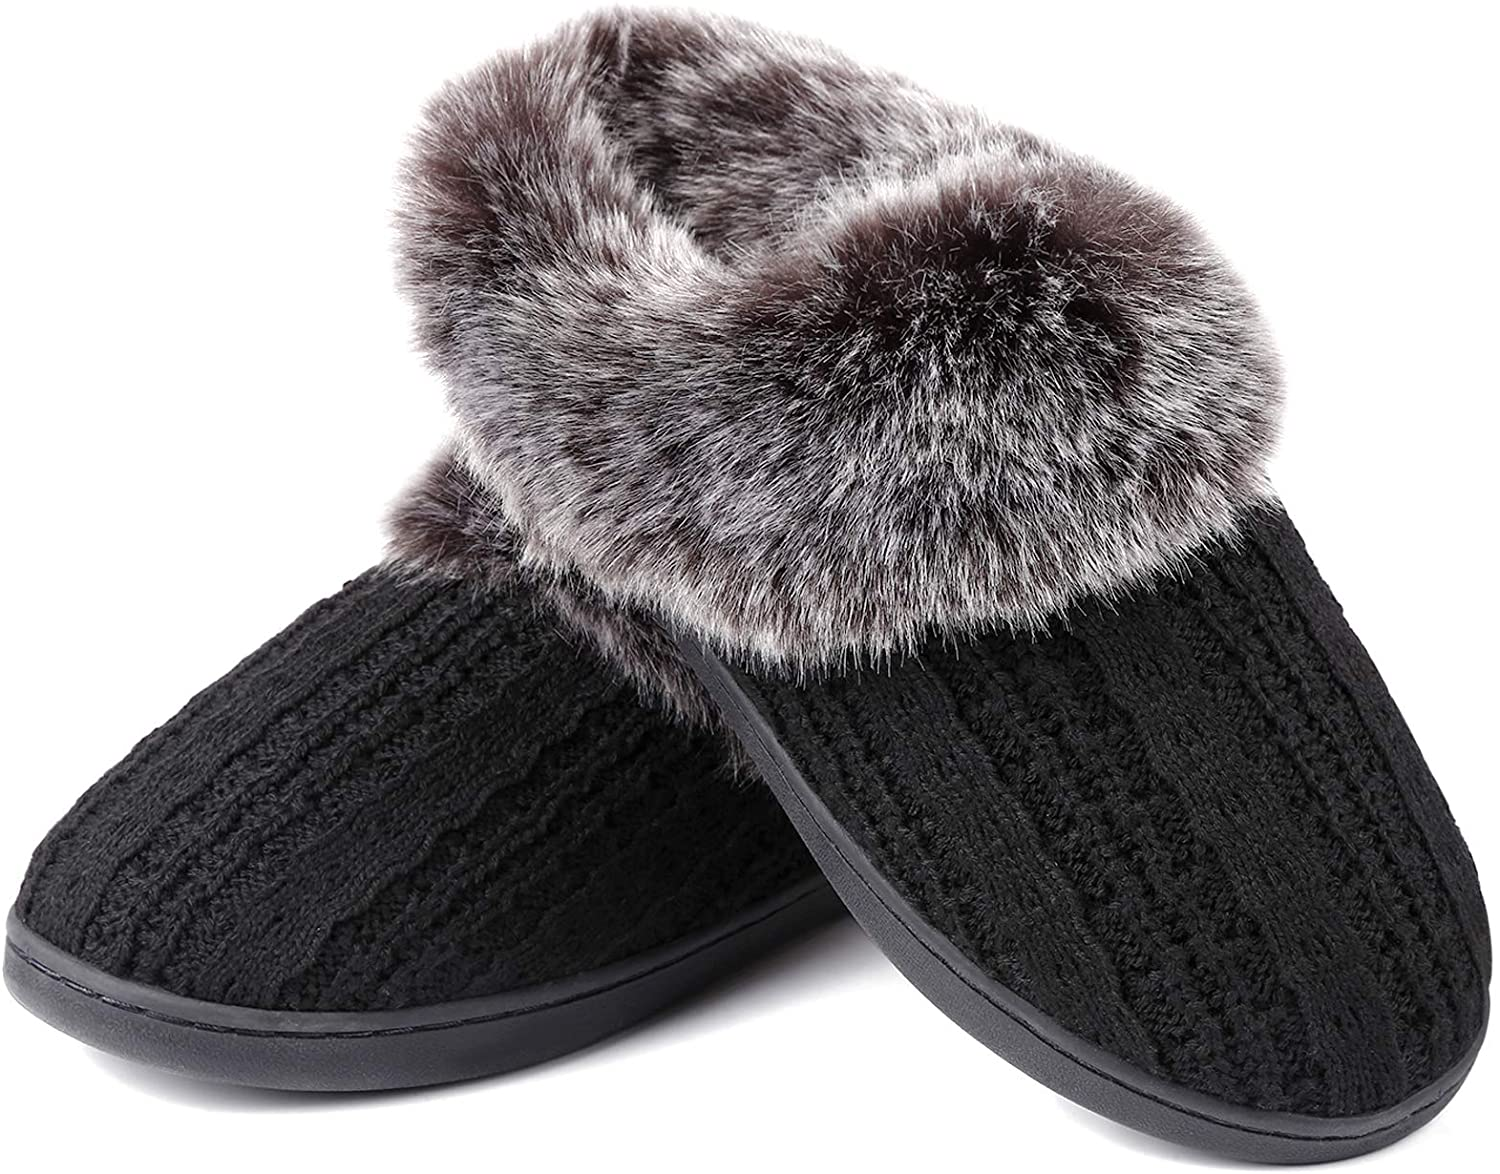 Soft Ladies Slippers Furry Memory Foam Slippers for Women House Shoes Bedroom Home Indoor Outdoor Slip on